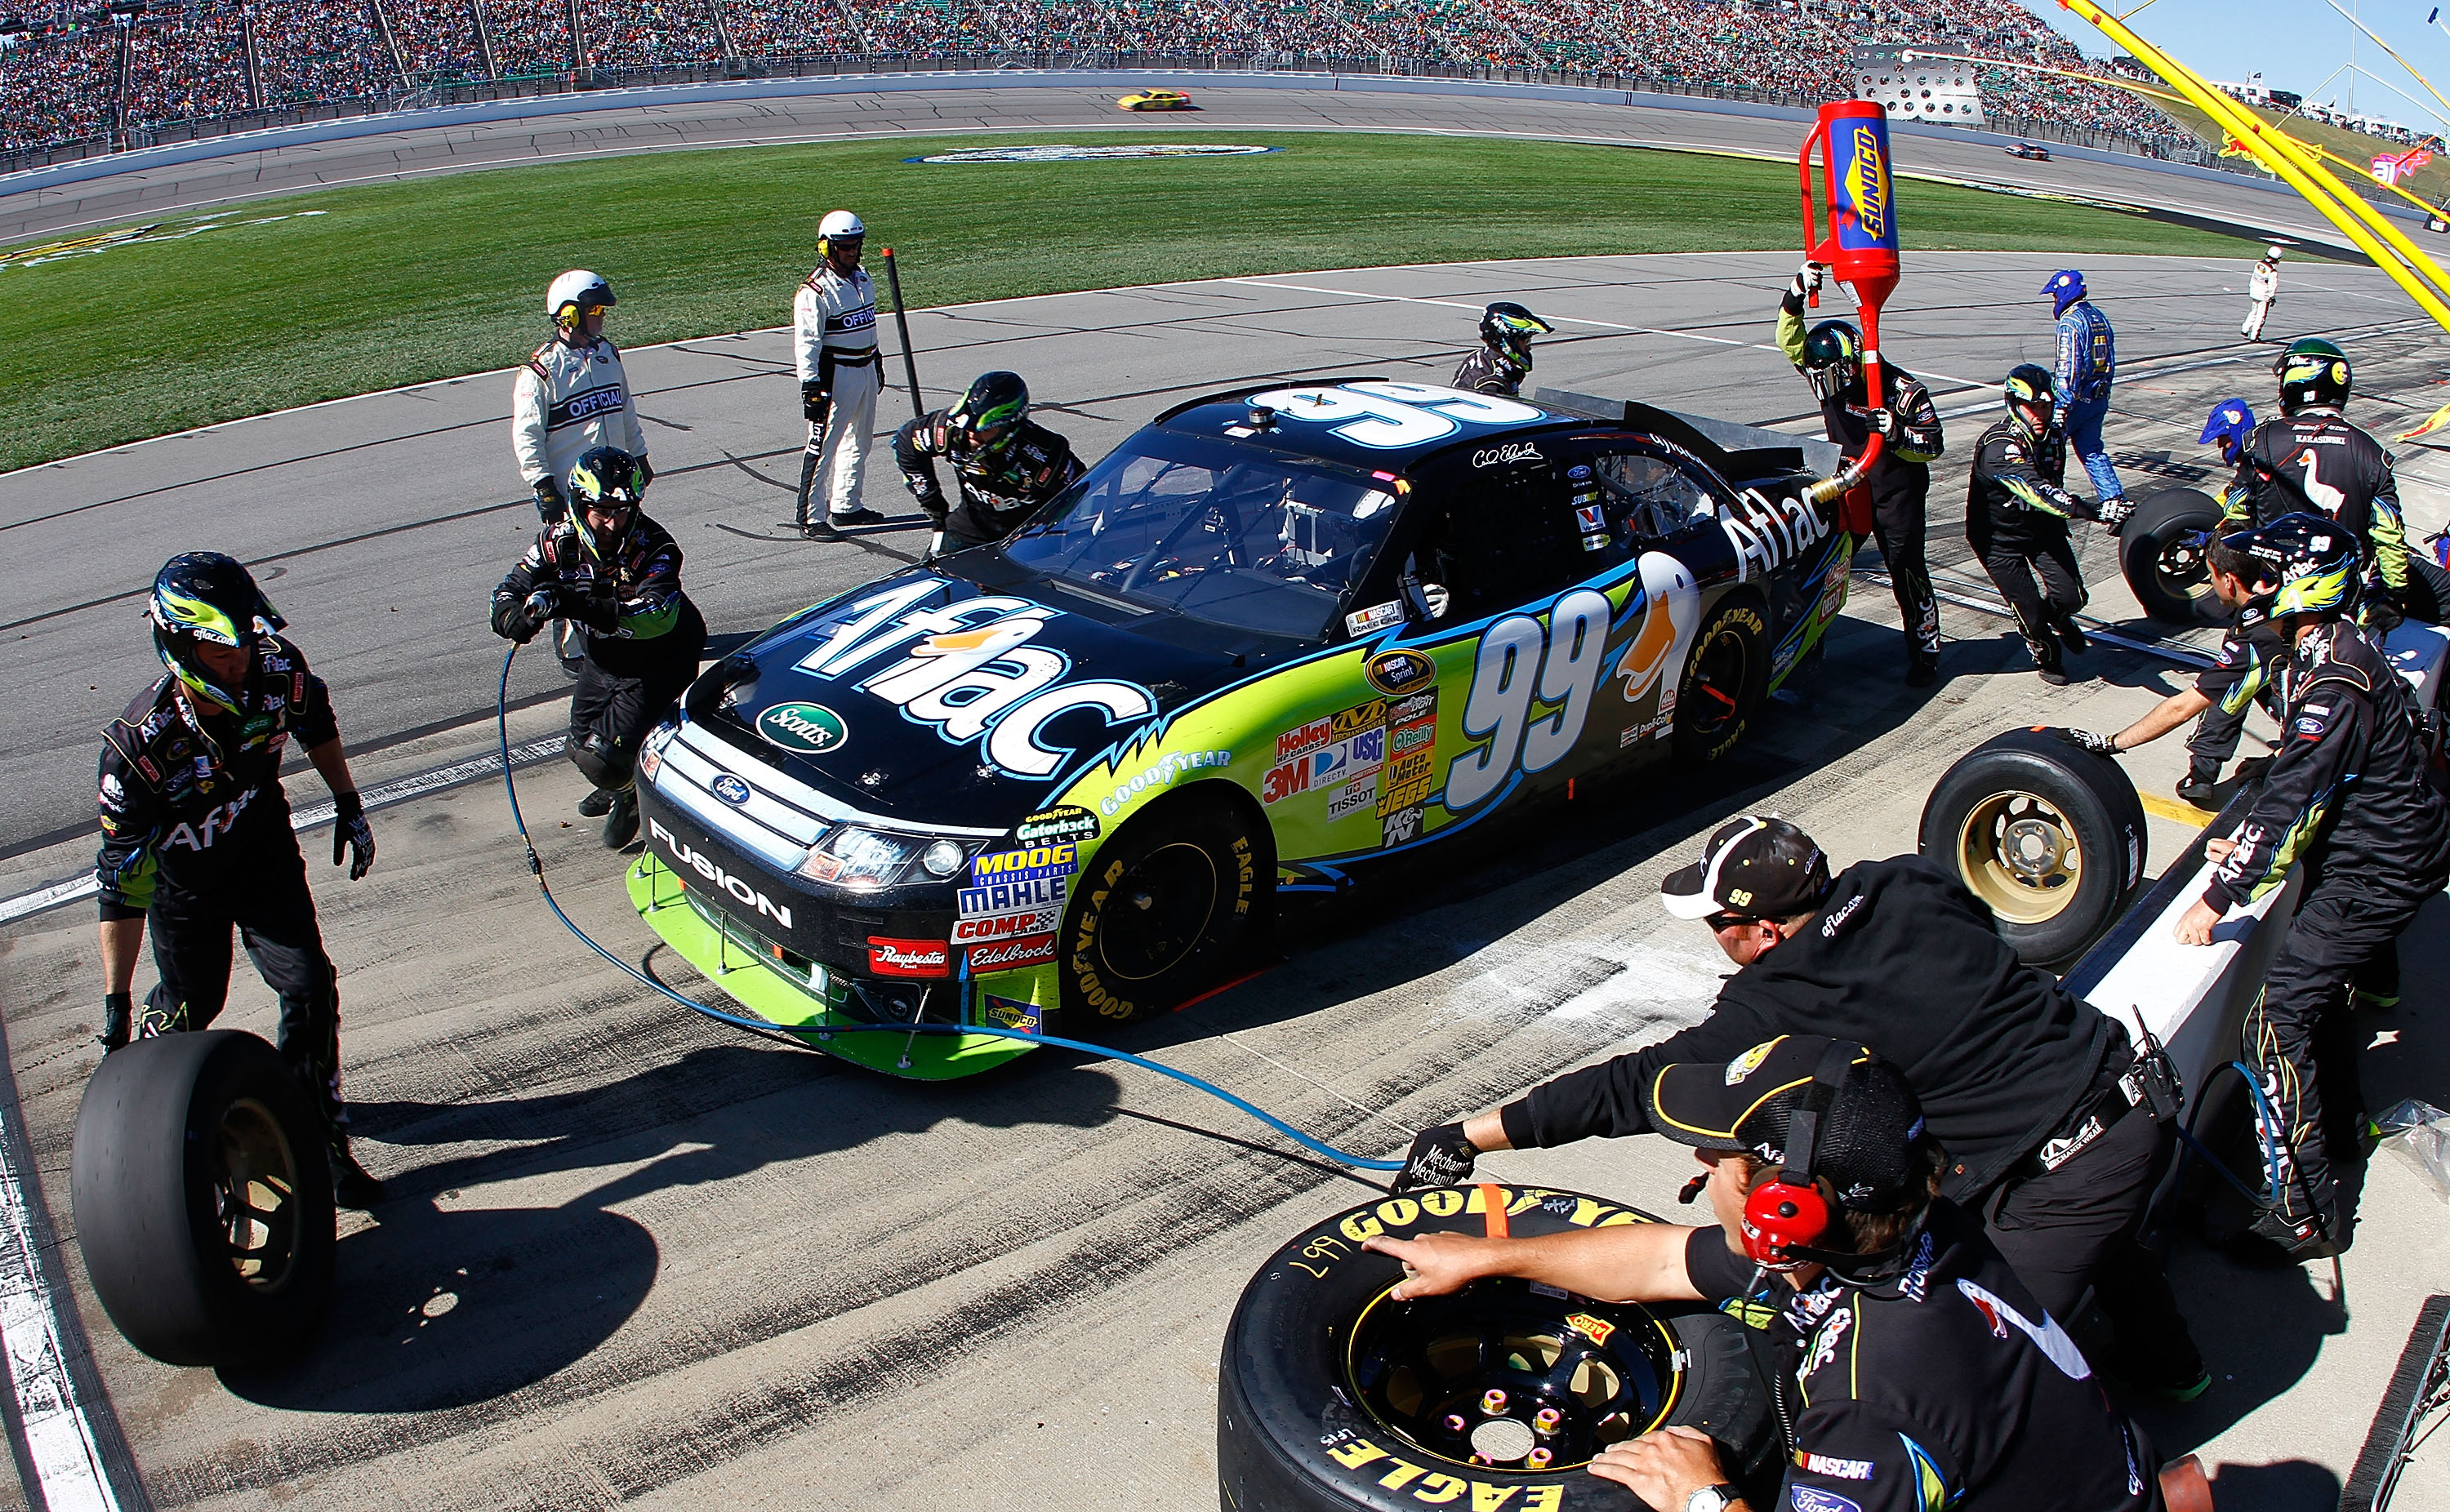 KANSAS CITY, KS - OCTOBER 03:  Carl Edwards, driver of the #99 Aflac Ford, makes a pit stop during the NASCAR Sprint Cup Series Price Chopper 400 on October 3, 2010 in Kansas City, Kansas.  (Photo by Jason Smith/Getty Images for NASCAR)